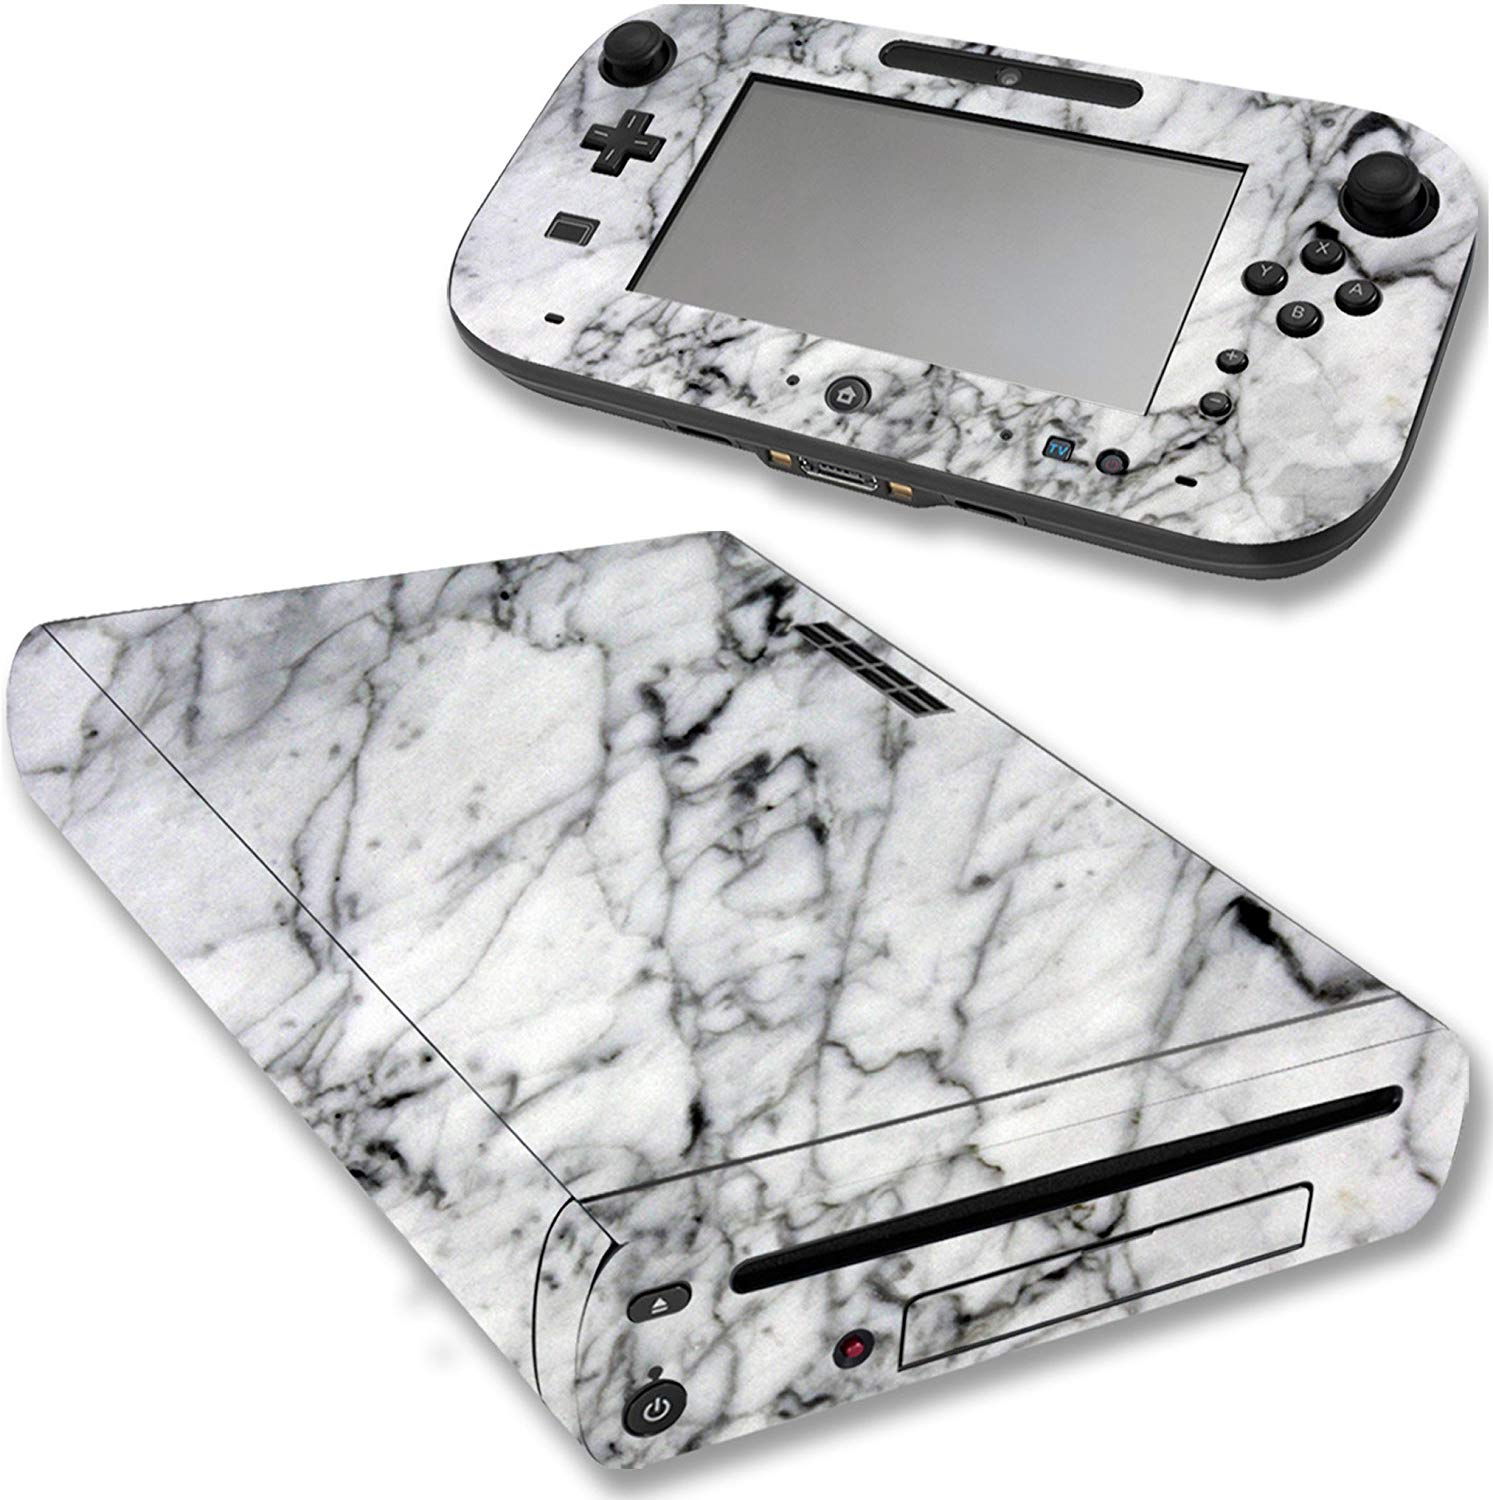 VWAQ Wii U Console Marble Skin Nintendo Wii U Decal Sticker Covers - WGC7 - VWAQ Vinyl Wall Art Quotes and Prints